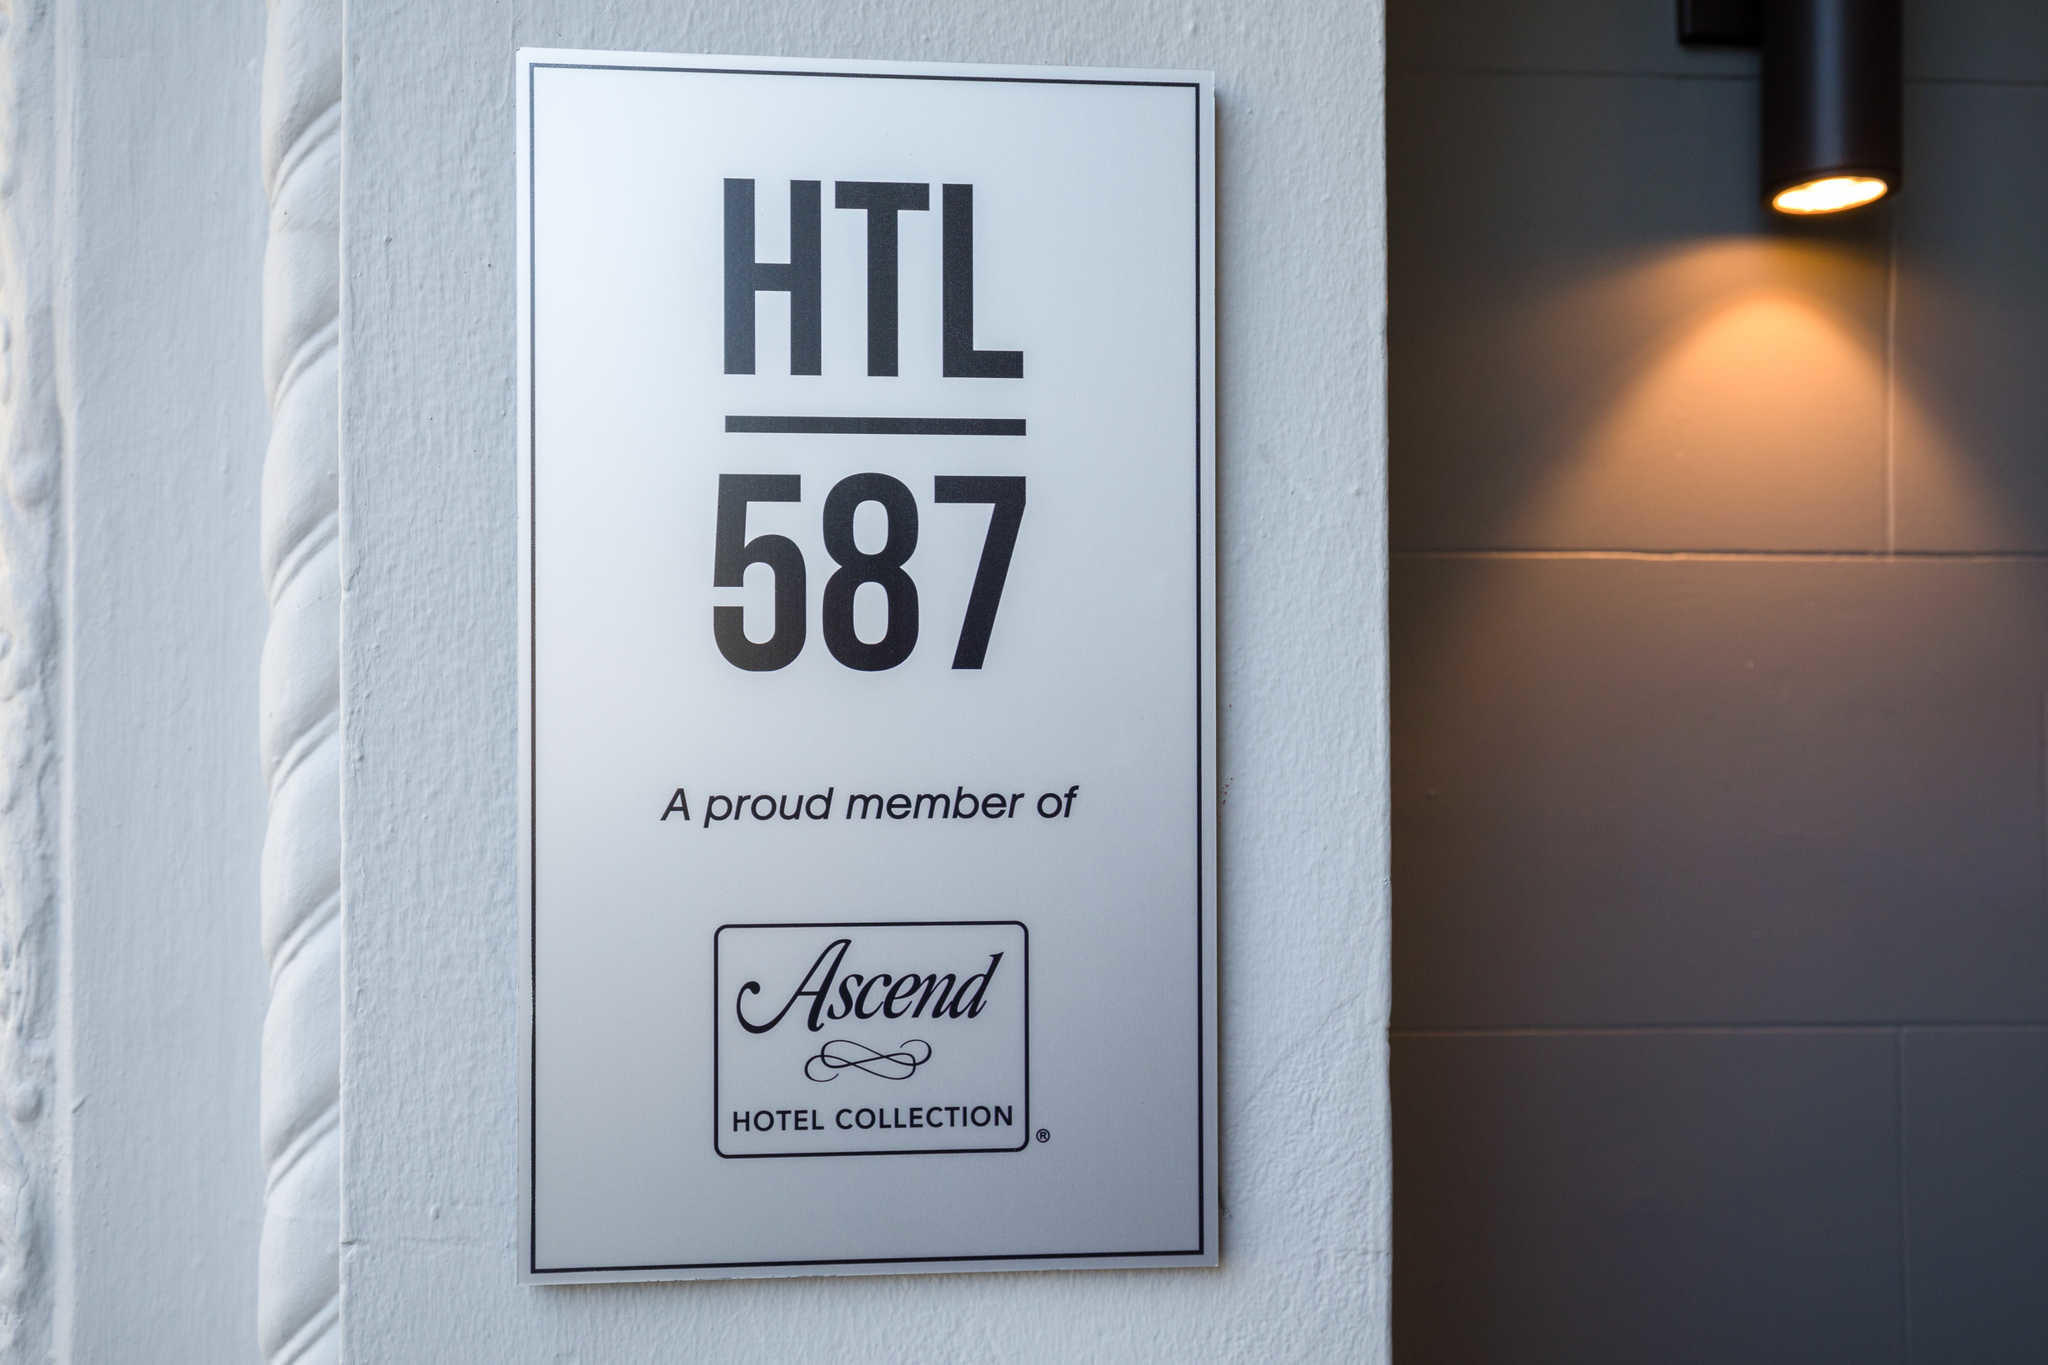 HTL 587, an Ascend Hotel Collection Member